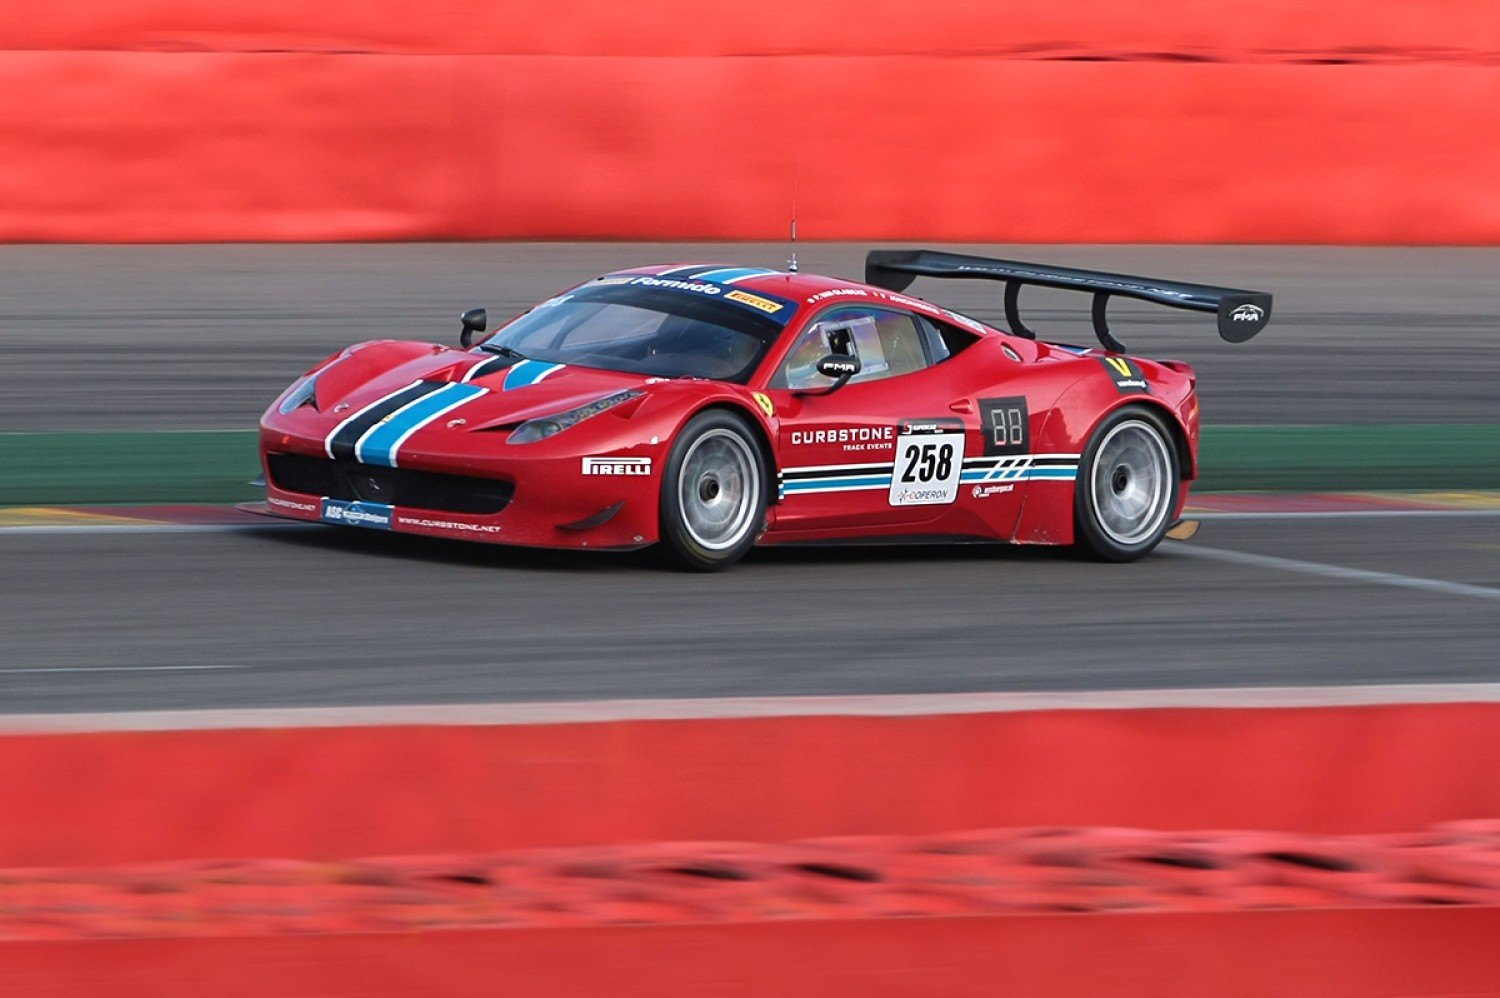 Curbstone Corse enters Total 24 Hours of Spa